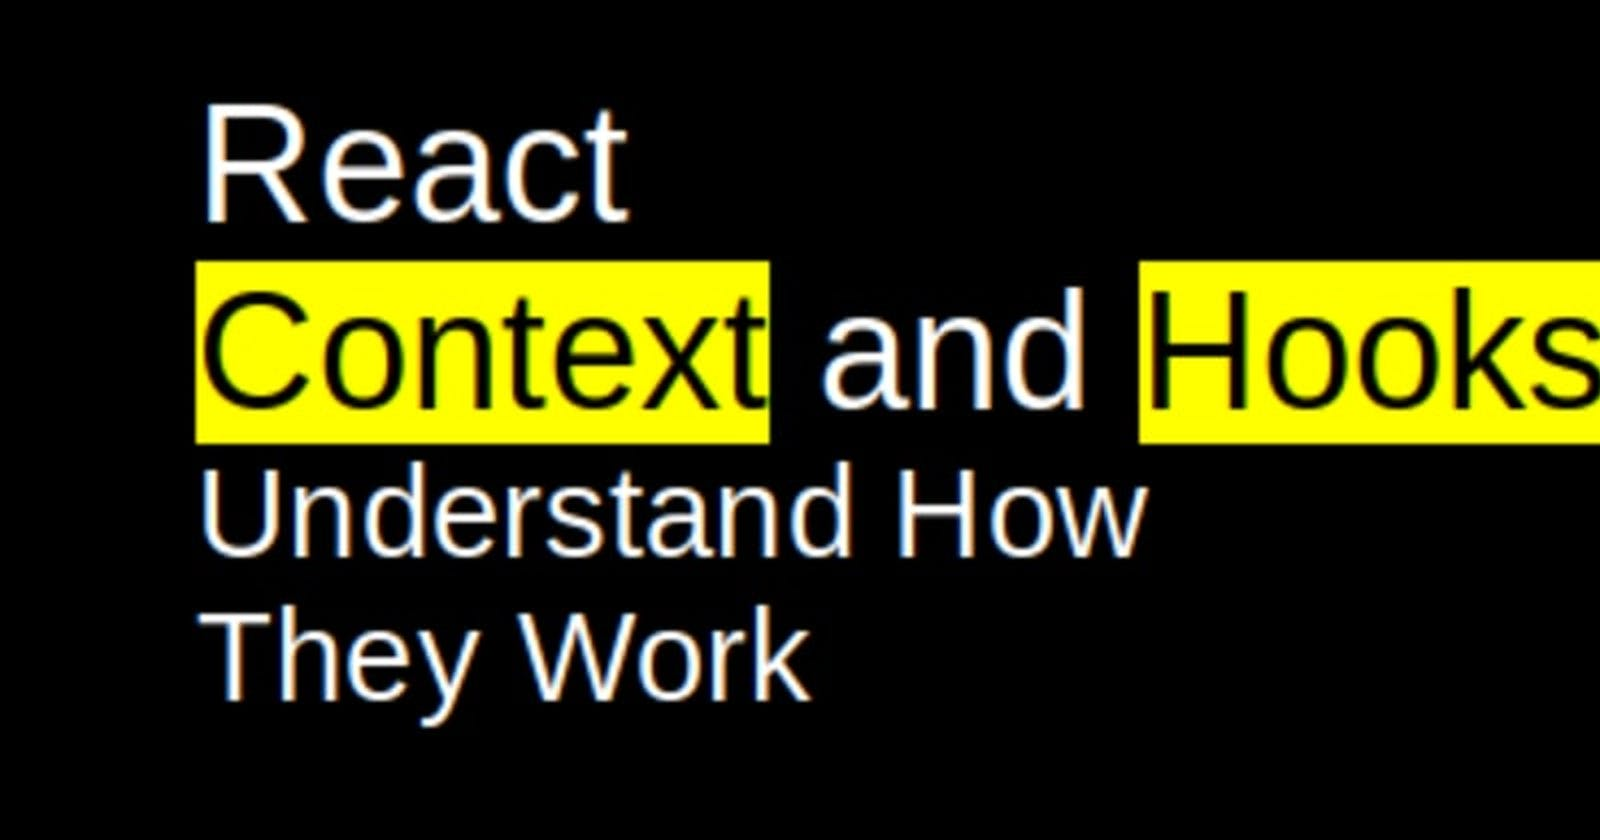 React Context and Hooks: An Open Source Project to Understand How They Work